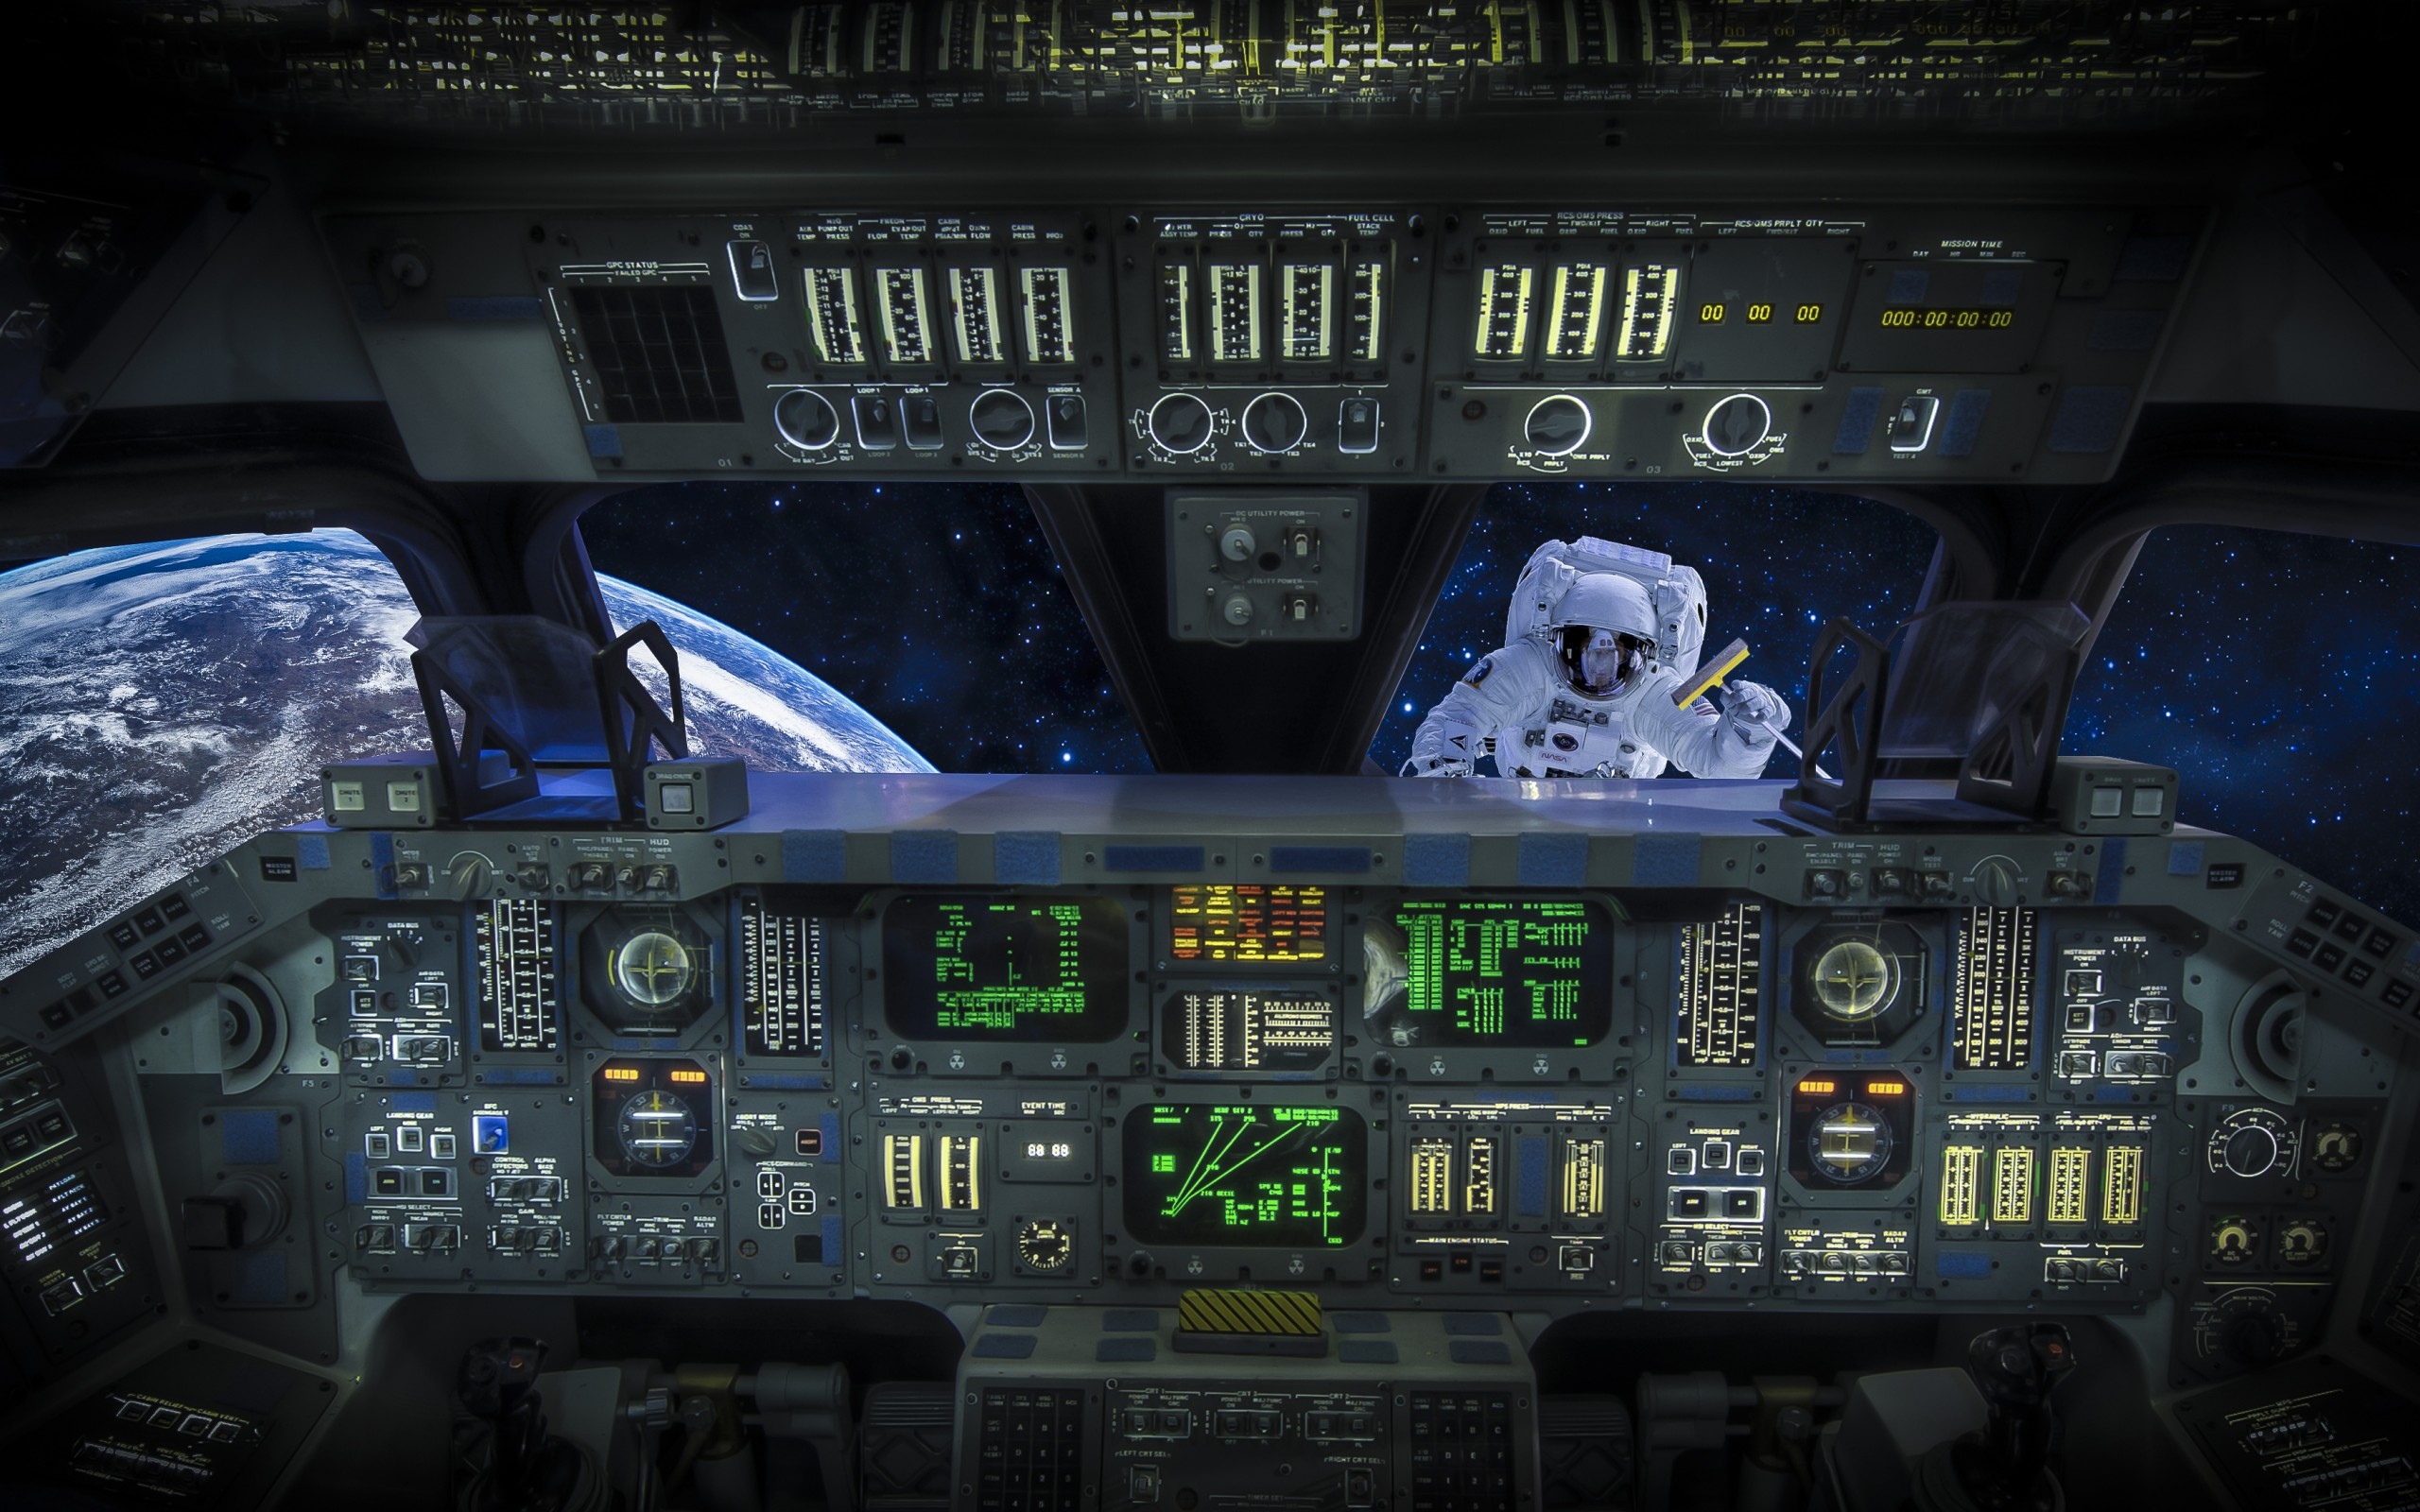 Cockpit Wallpapers 2560x1600 | BsnSCB Gallery